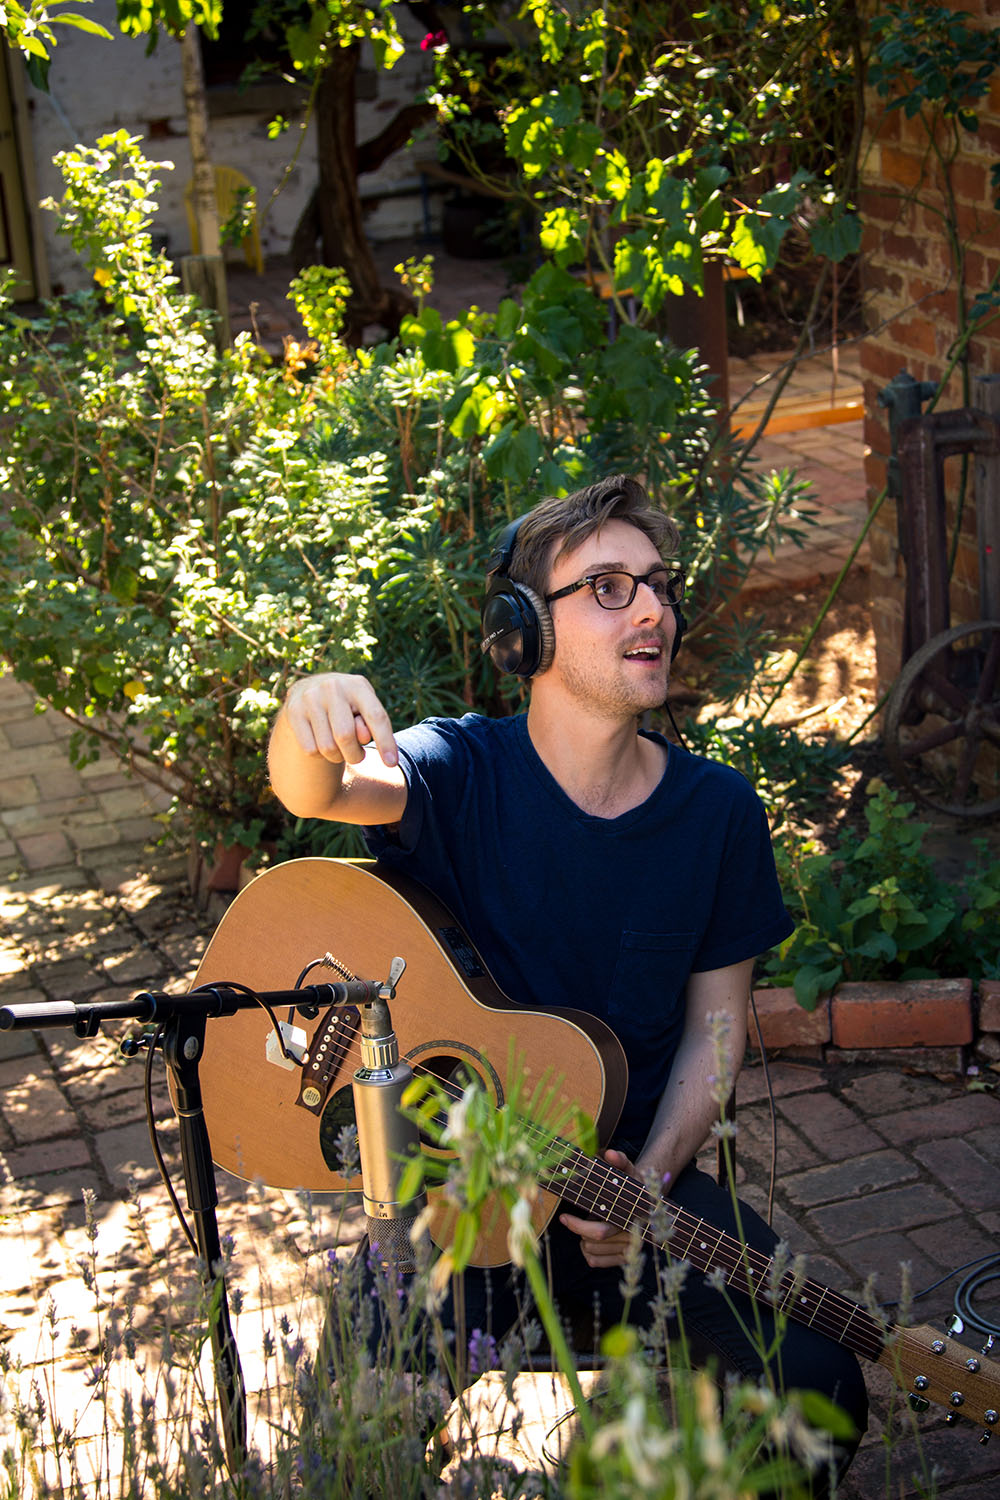 Sam Cromack recording his acoustic guitar out on the Sound Recordings patio to get a bit of separation and nature